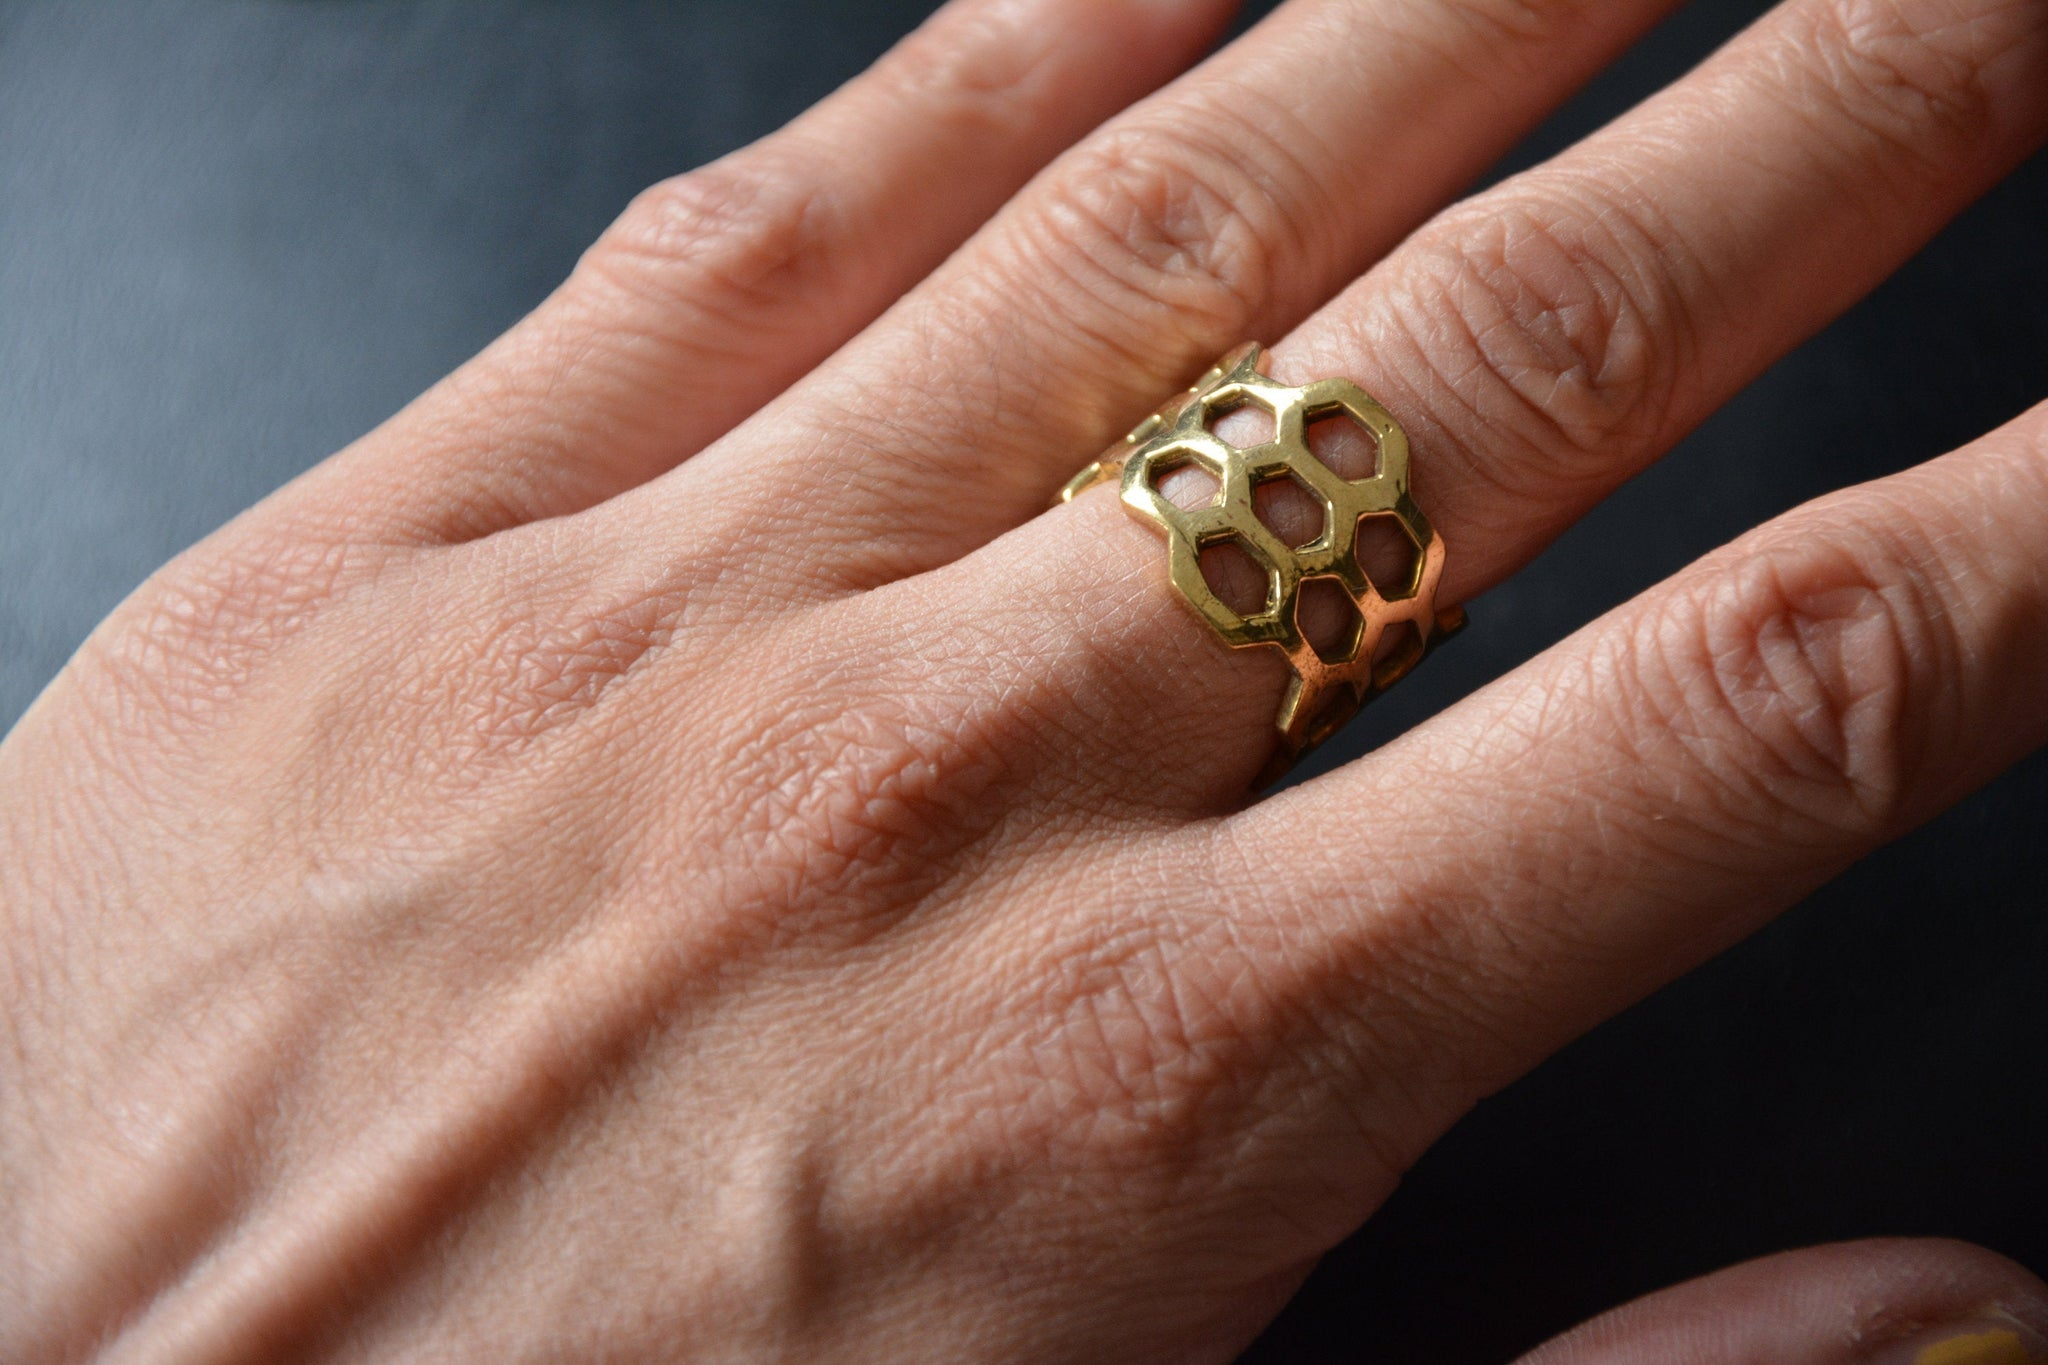 HIVE Brass Ring - Flower of Life Ring, Gemstone Ring, Tribal Ring, Geometric Ring, Adjustable Ring, Sacred Geometry, Psytrance, Psy Jewelry